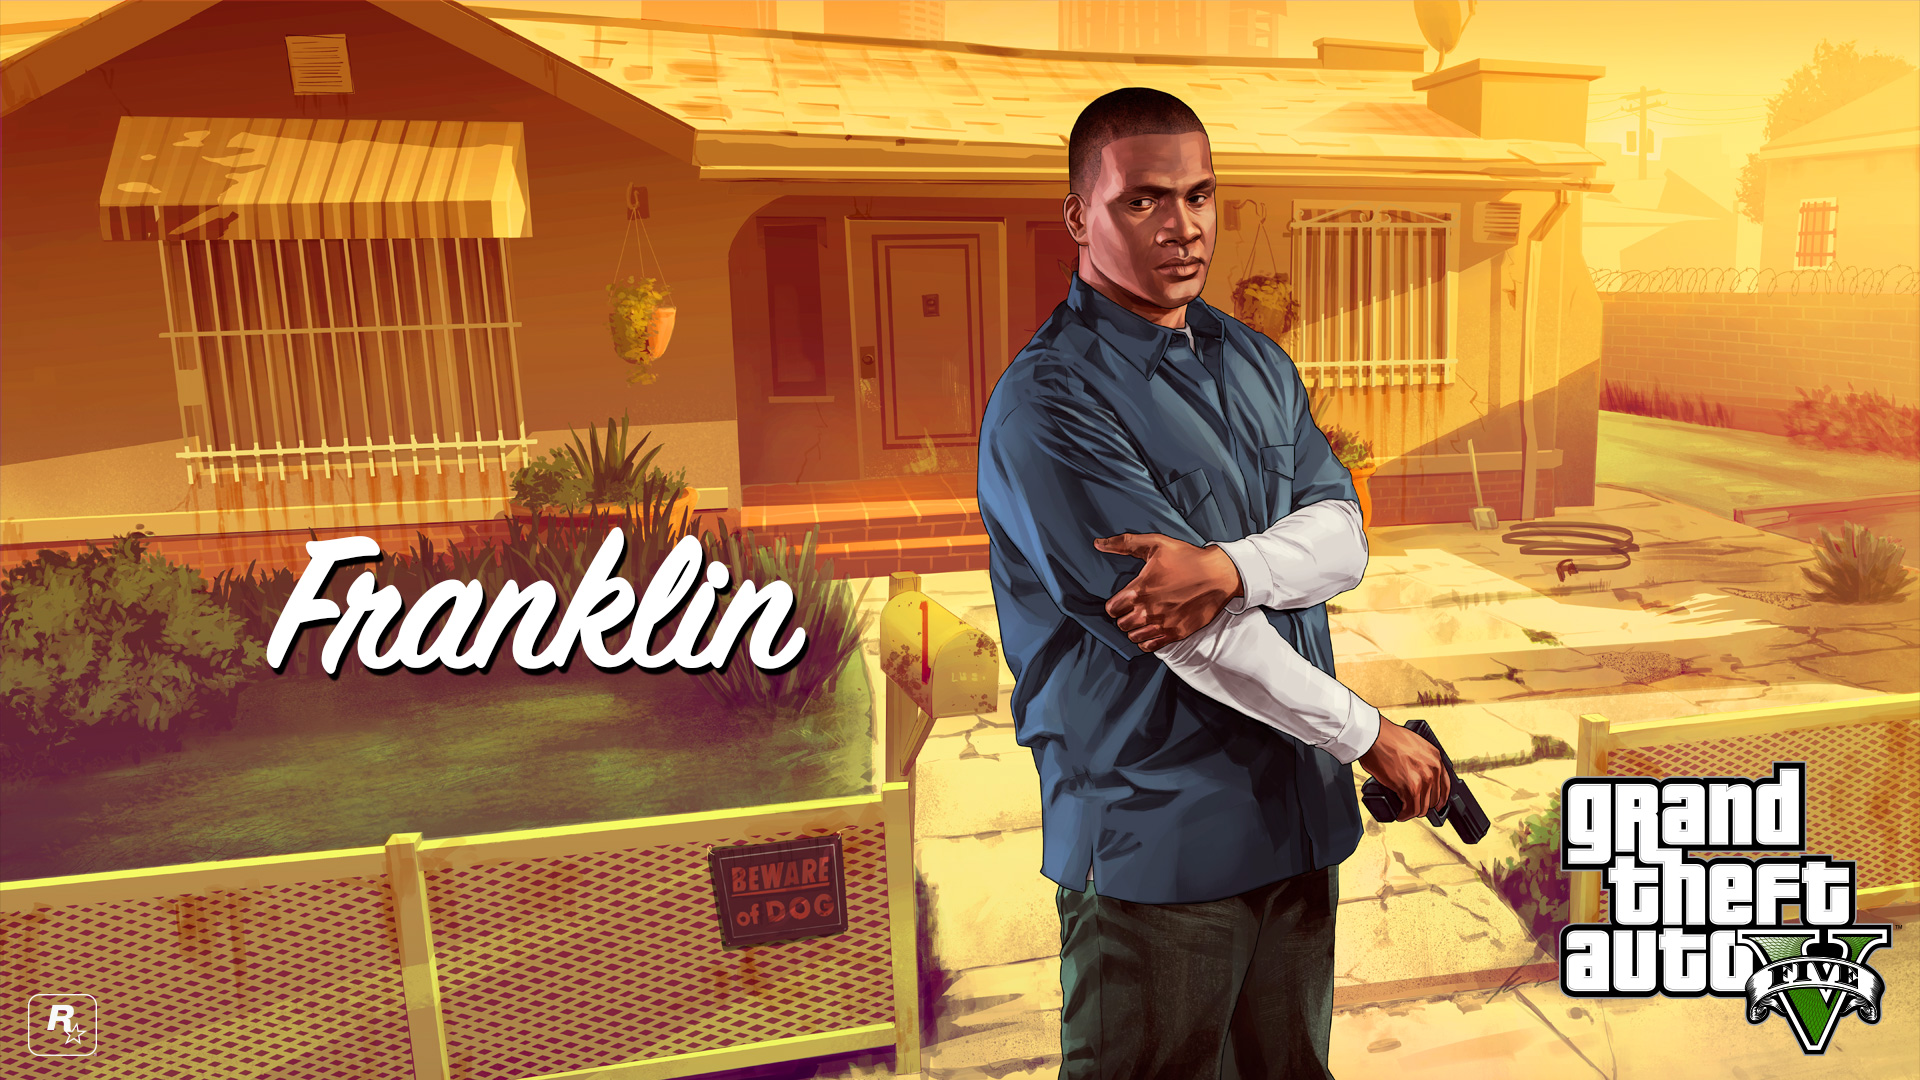 Grand_Theft _auto_V_franklin